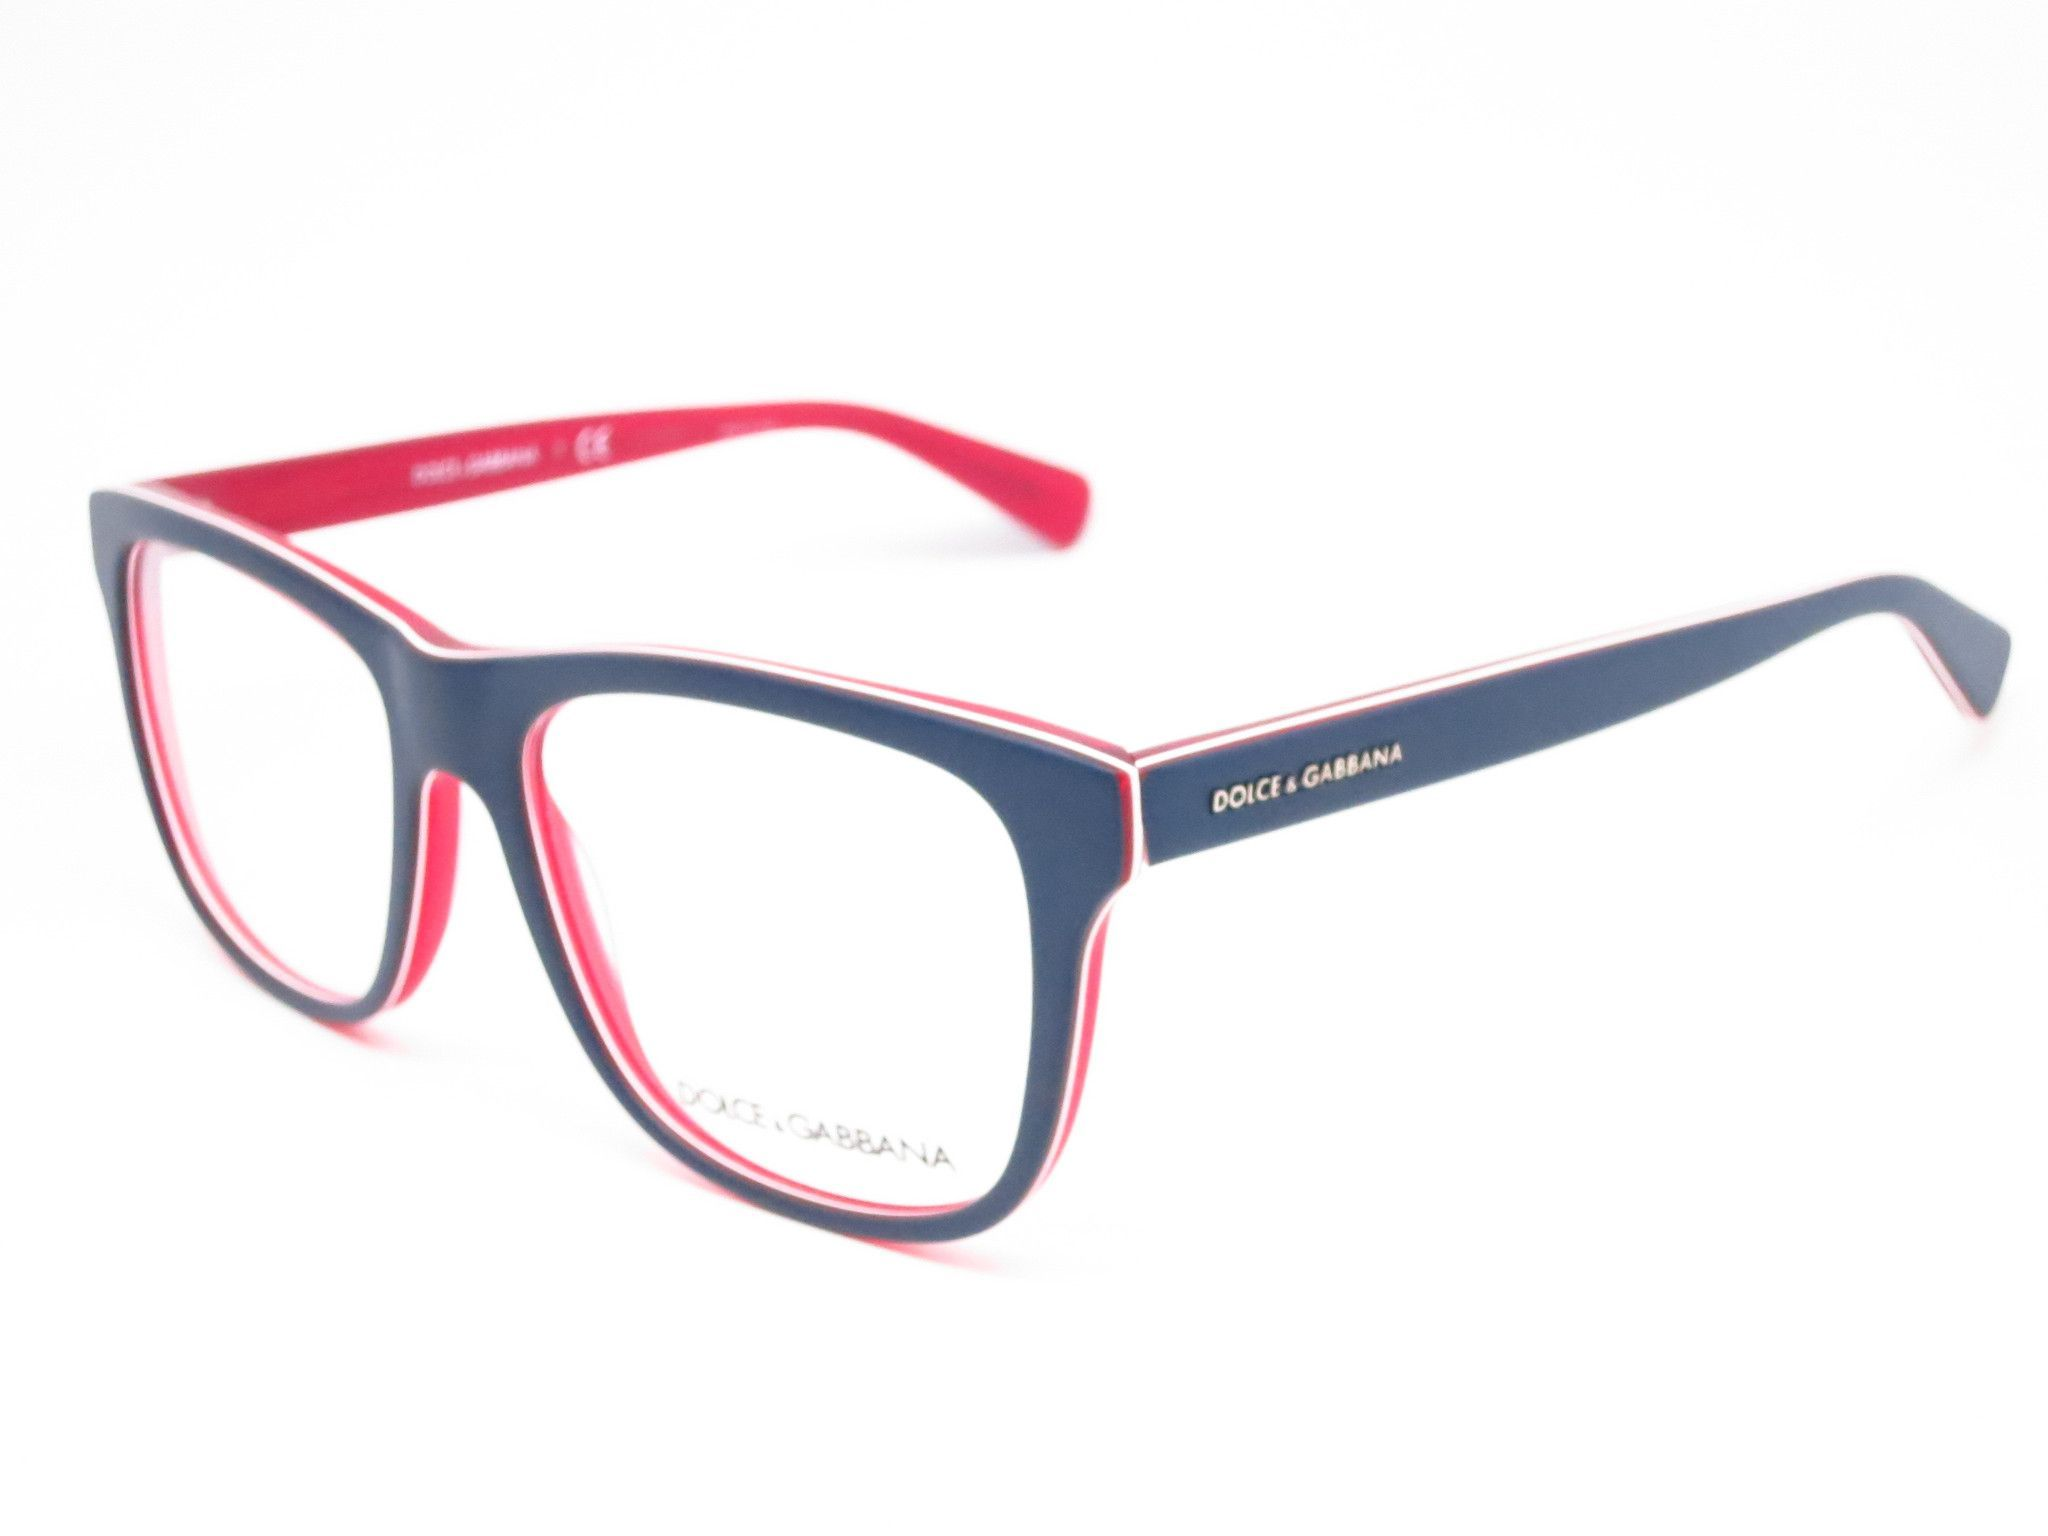 380a84c224f4 Dolce   Gabbana DG 3206 Product Details Brand Name   Dolce   Gabbana Model  Number   DG 3206 - Color Code   1872 Frame Color   Top Blue on Matte Red  Lens ...